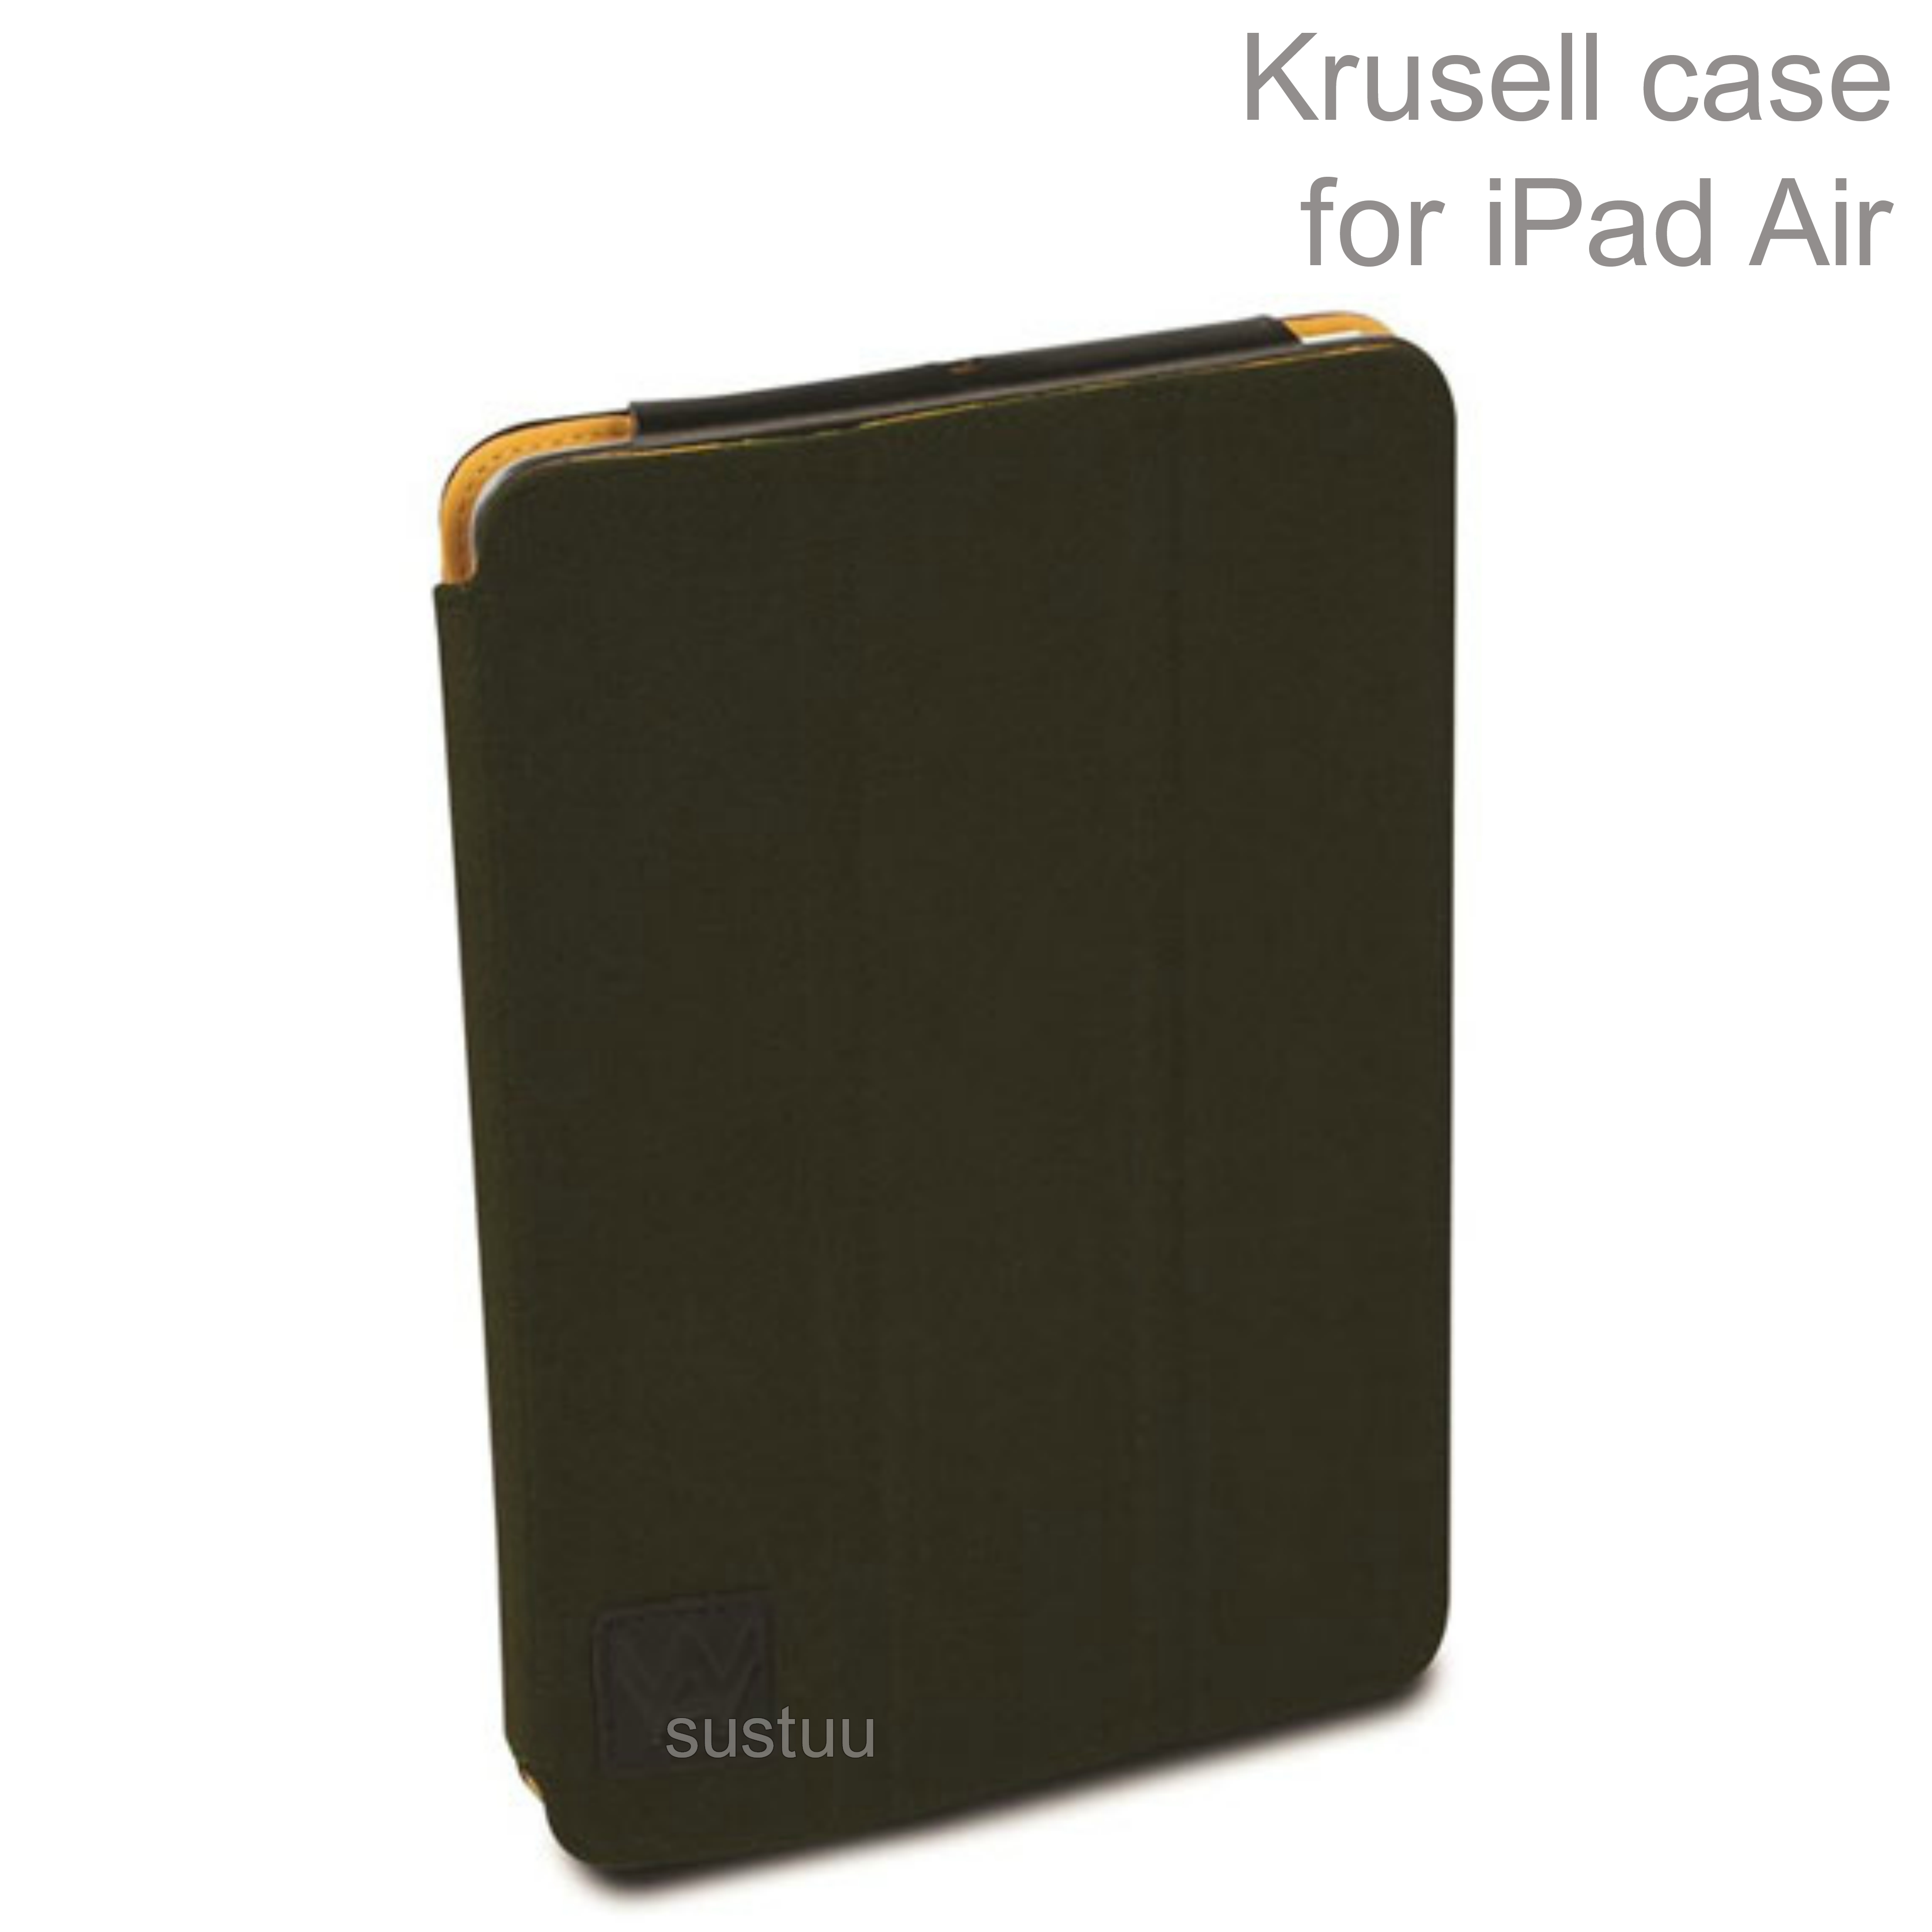 Krusell Textured Canvas Leather Case Cover | Water Splash Proof | iPad Air- Olive